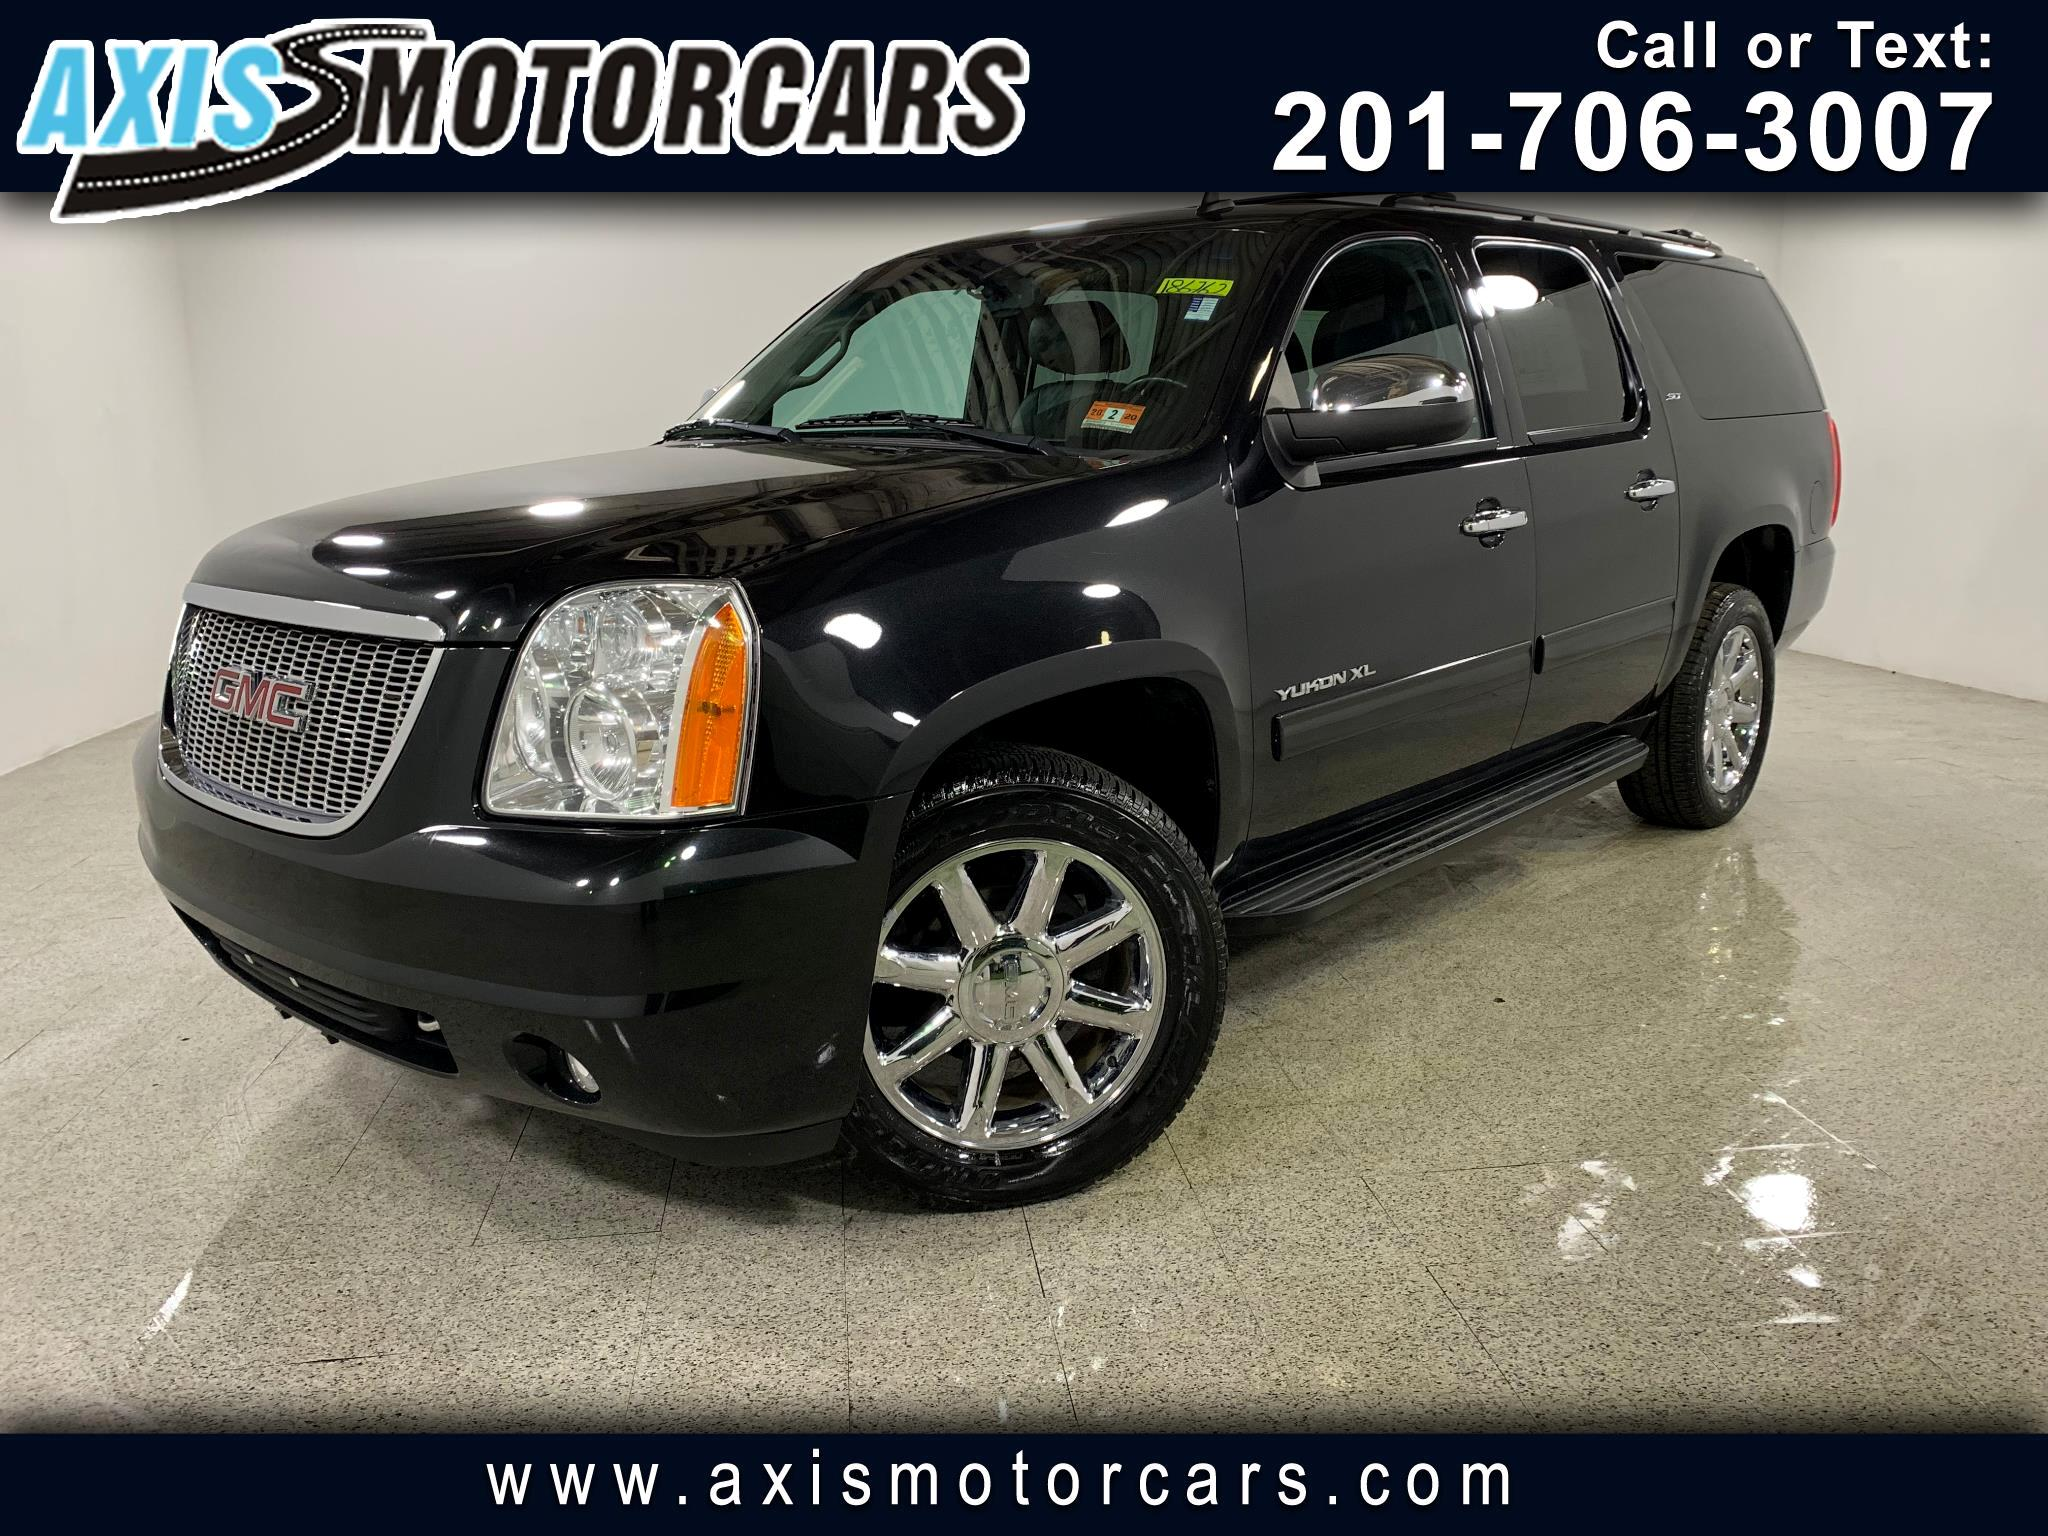 2013 GMC Yukon XL 1500 SLT w/Bose Sound System Backup Camera